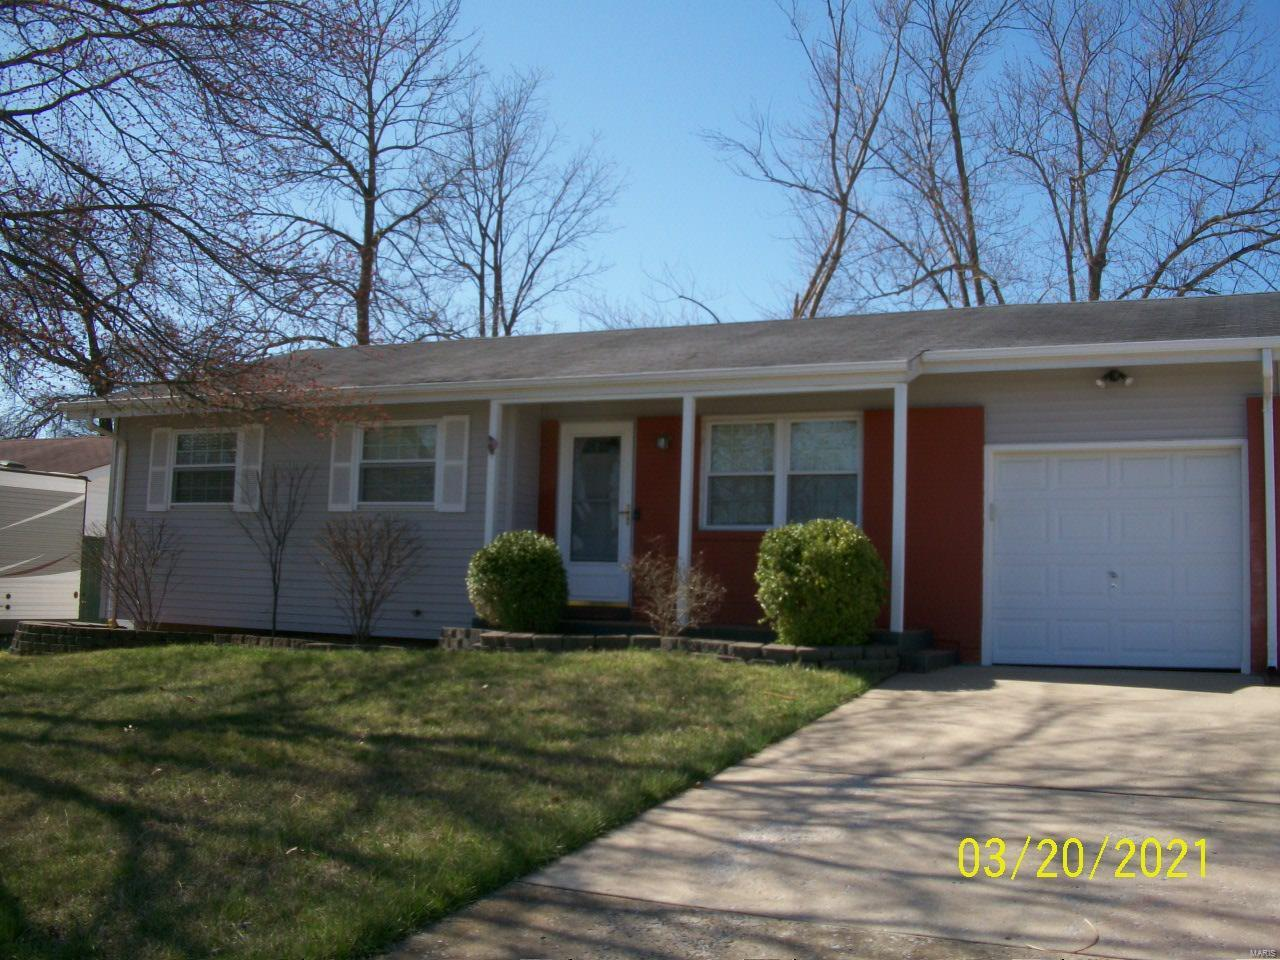 2014 Bentley Manor Drive Property Photo - Fenton, MO real estate listing